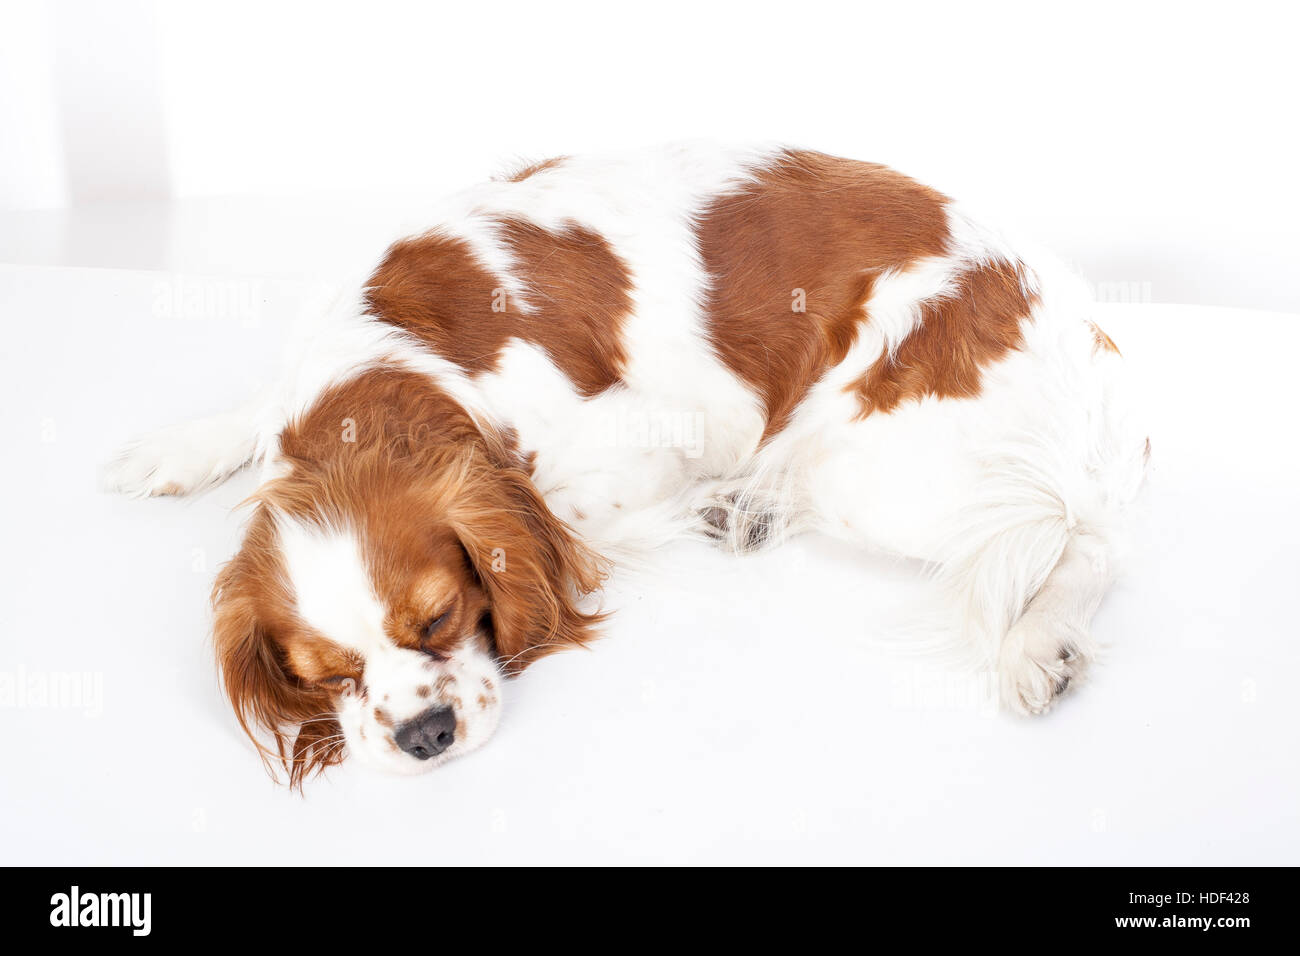 Sleeping dog. Dog sleeping in studio king charles spaniel. White background. cavalier king charles spaniel sleep. - Stock Image